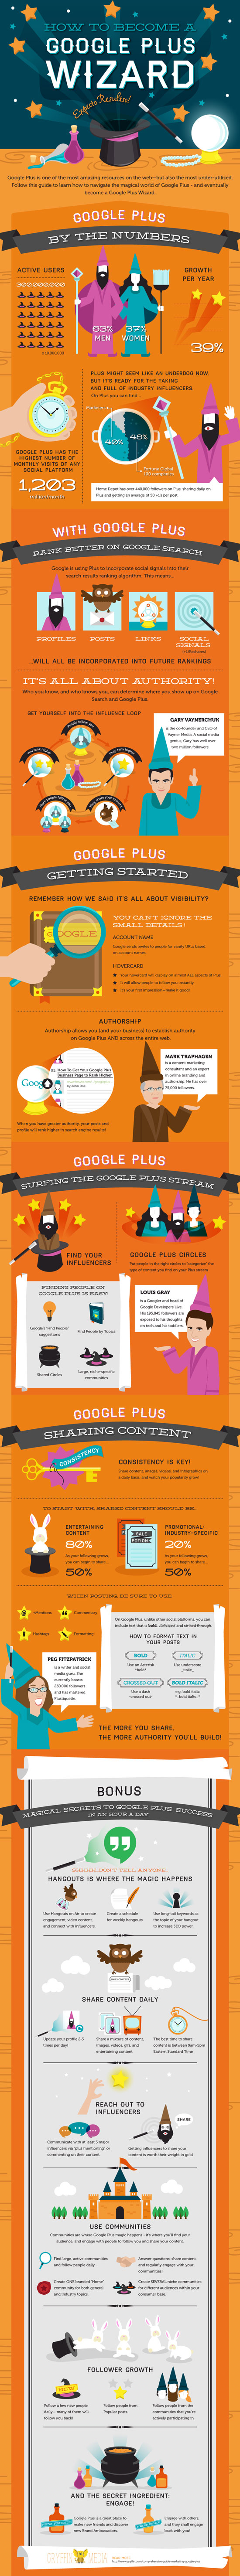 How To Become a Google Plus Wizard